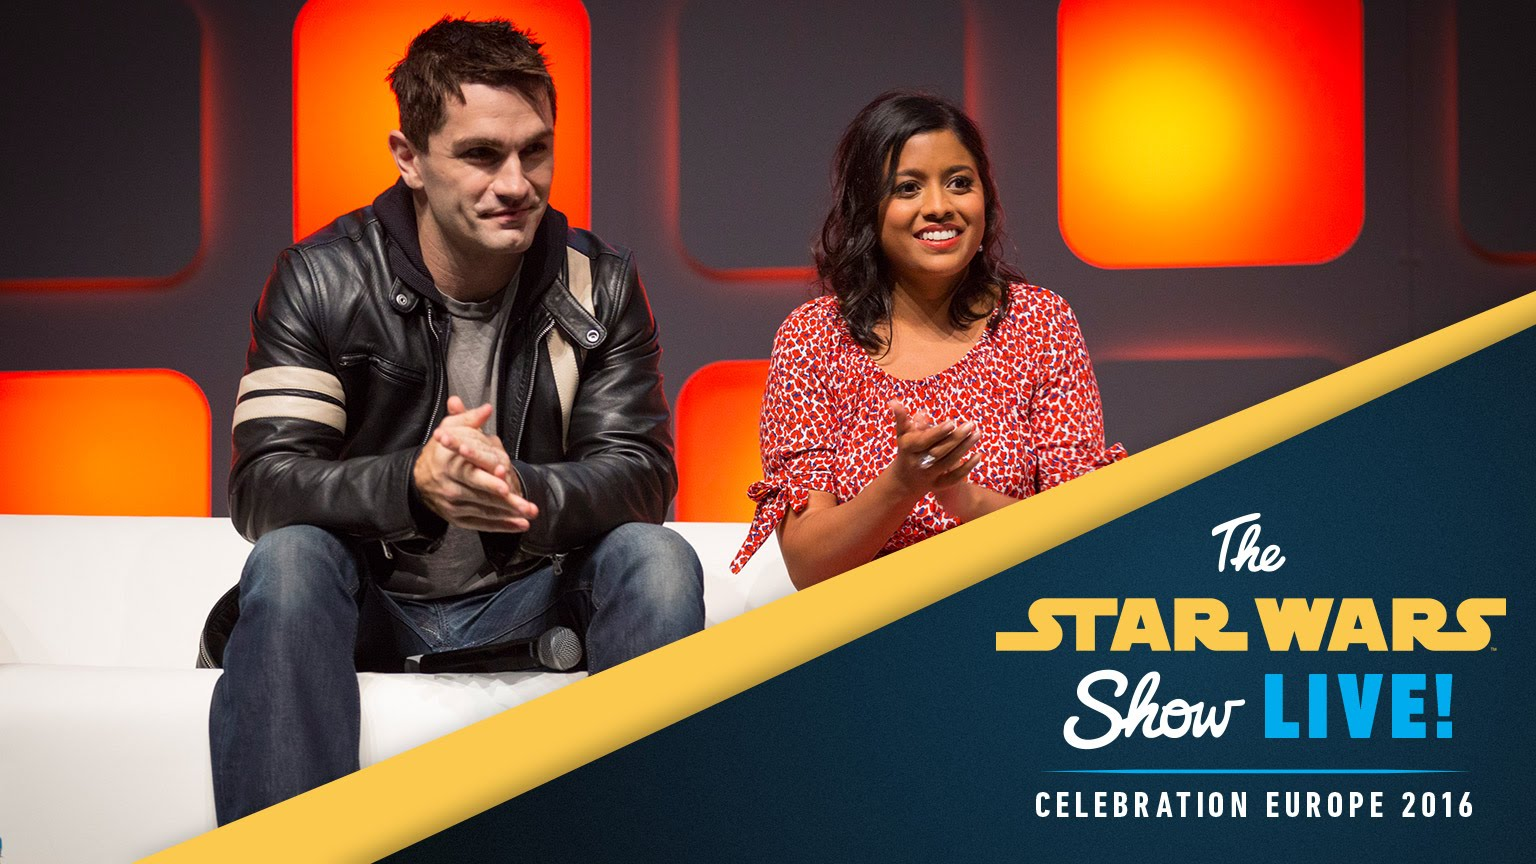 Star Wars Rebels Season 3 Panel | Star Wars Celebration Europe 2016